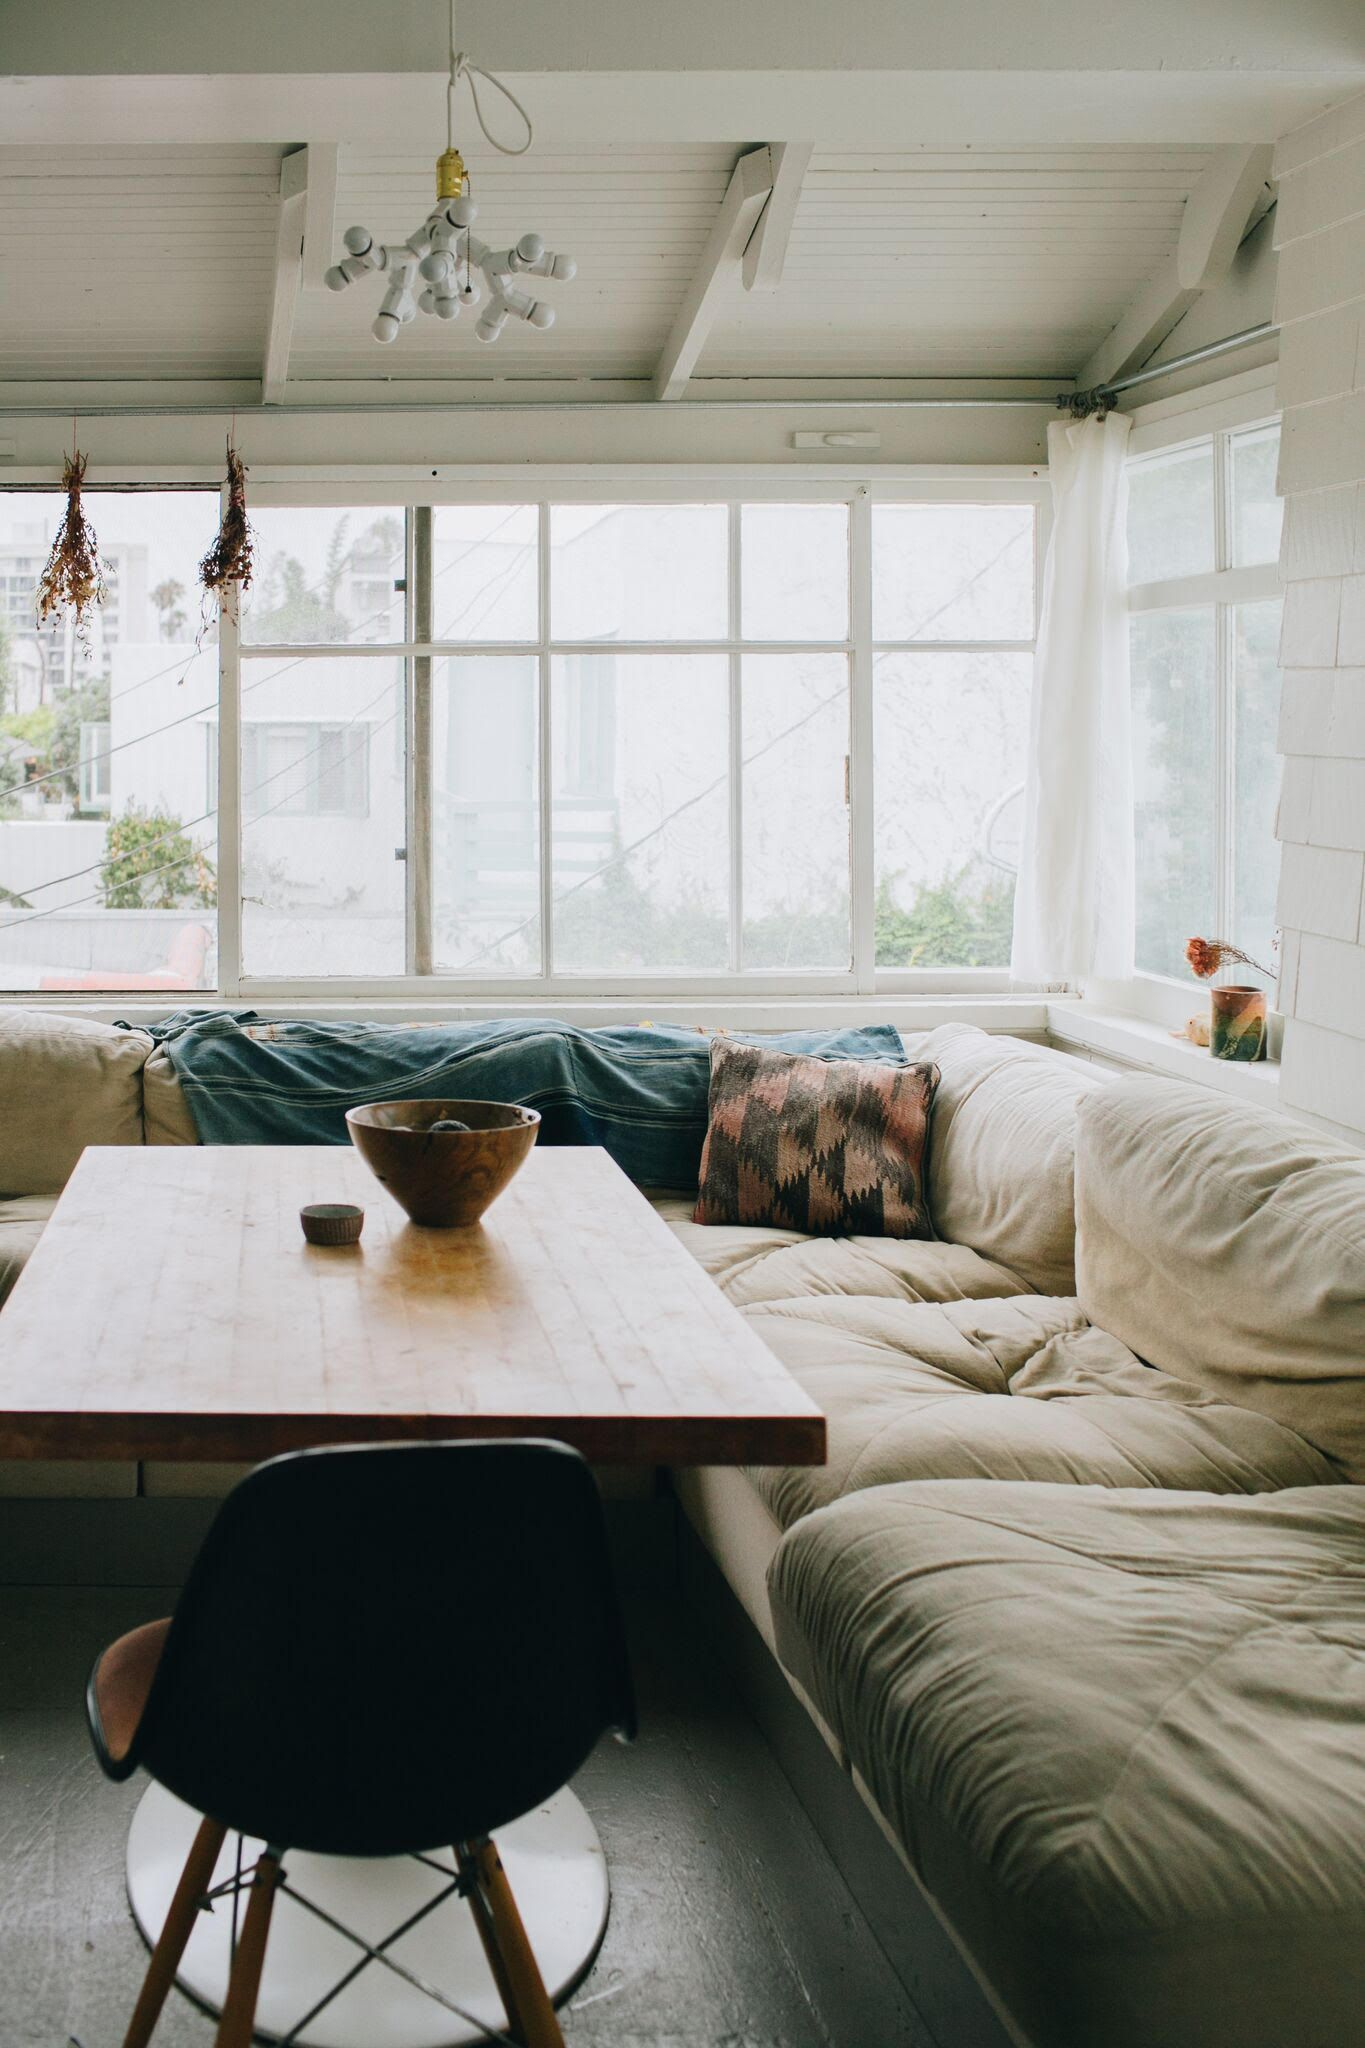 Self care interview series ally walsh golubka kitchen seating forest house also best espacos images in future home decor living room rh pinterest